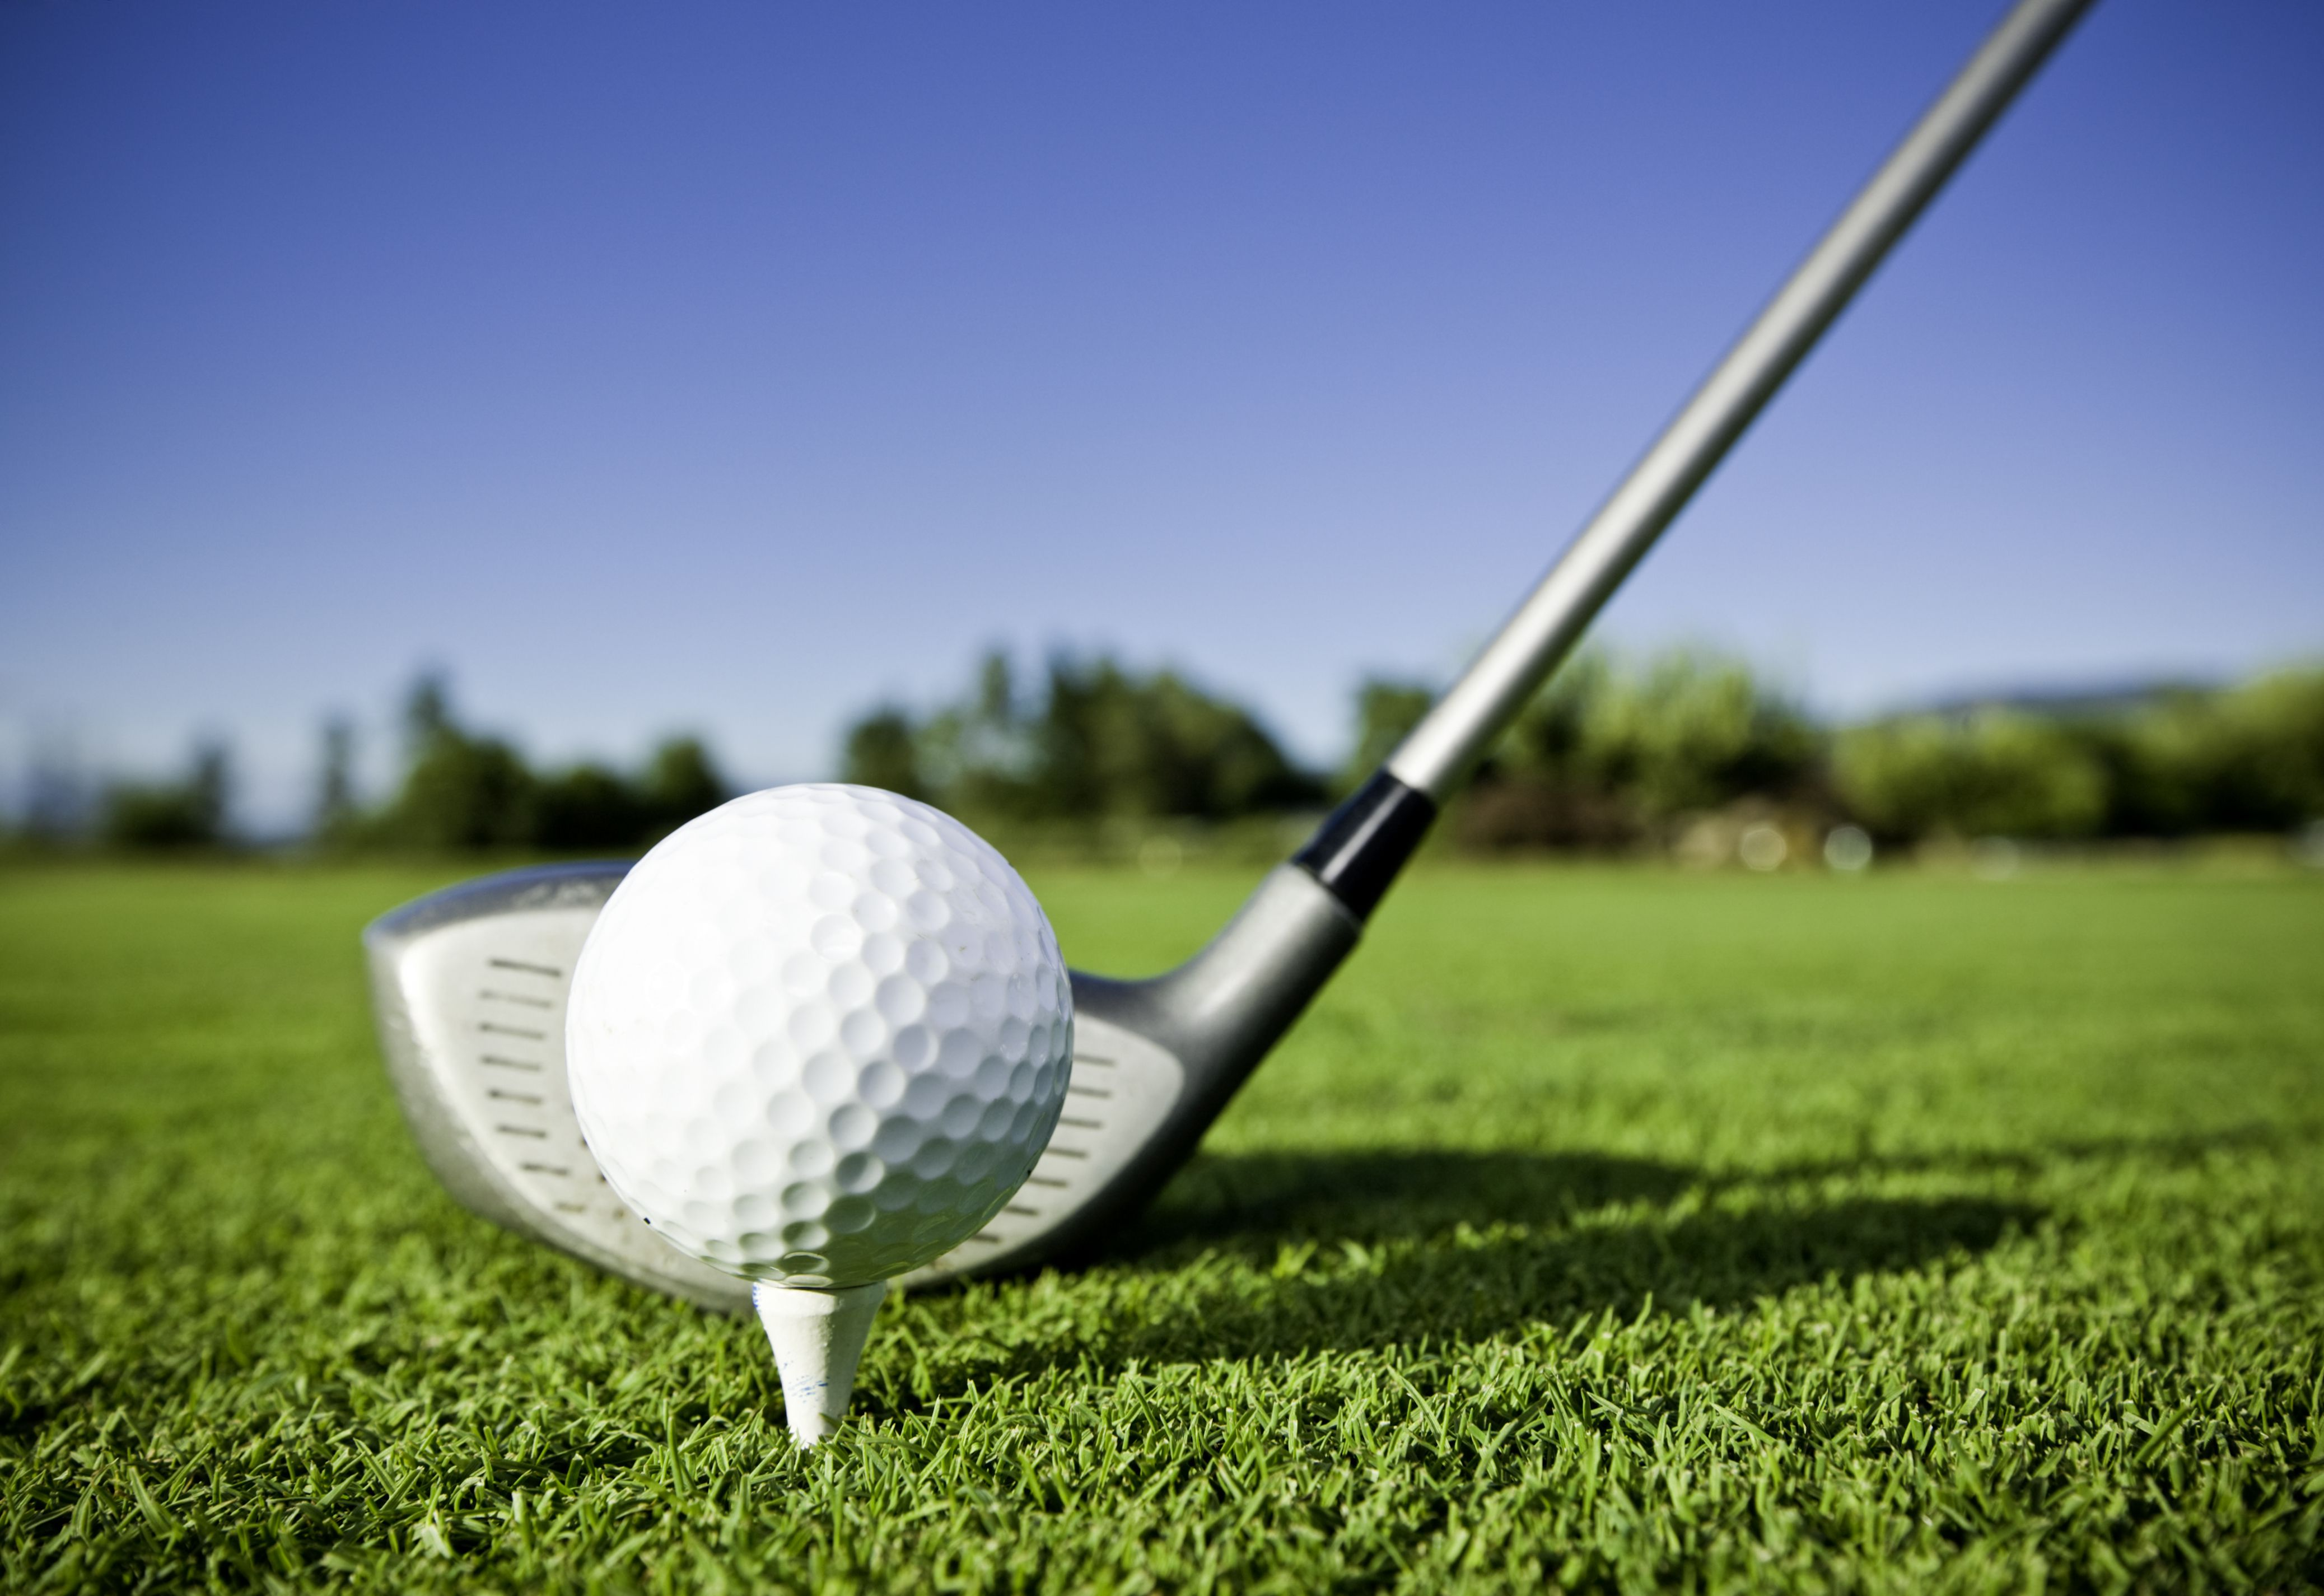 5th Annual Heart for Winter Haven Golf Tournament - Default Image of Games Sponsor (Putting Challenge, Bull's Eye Challenge, Par 3 On/Off)